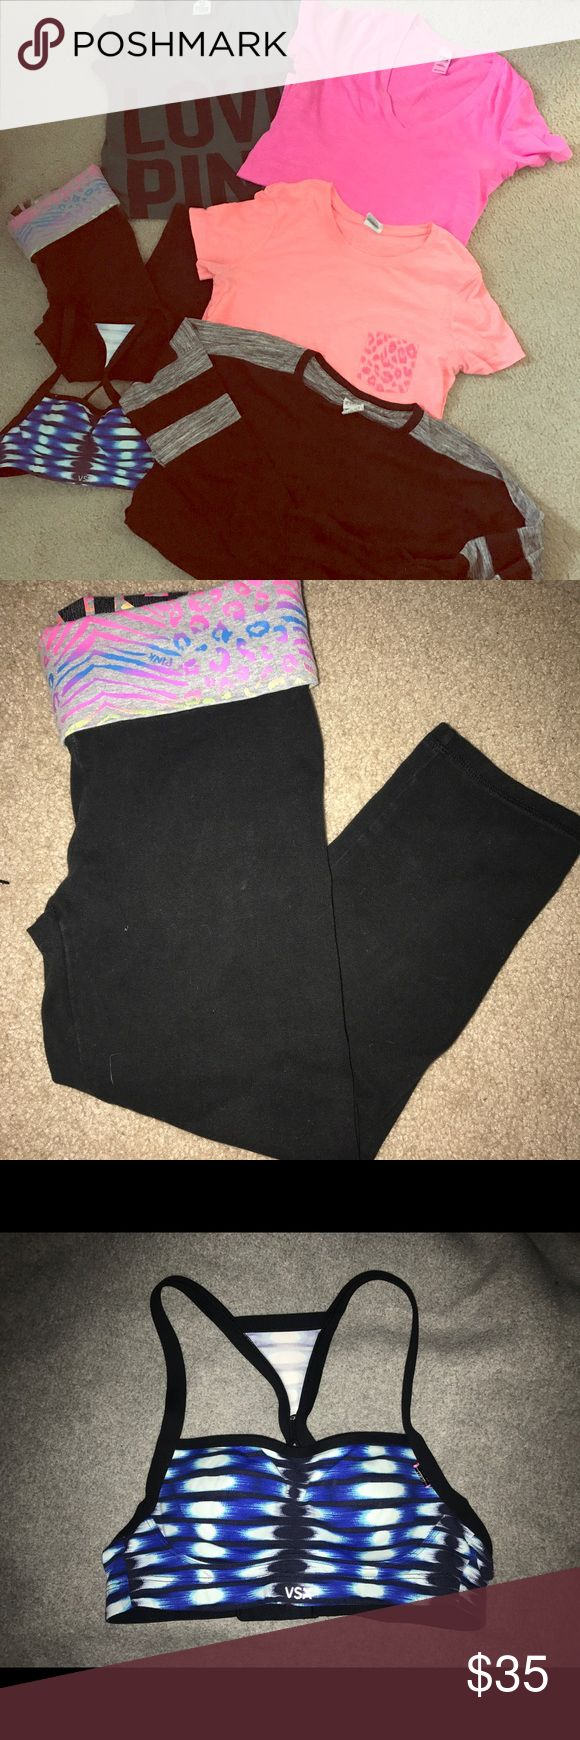 PINK By VS Bundle❣️ PINK Clothing Lot! Green VNeck--size small! Bright pink VNeck--size small! Pink pocket tee--size xs! Blue sports bra--size 32a Yoga capris--Sz XS Black Longsleeve--size xs   ALL PINK ITEMS! In perfect condition! Price is for the whole bundle!  Every purchase comes with a free item! PINK Victoria's Secret Tops Tees - Short Sleeve